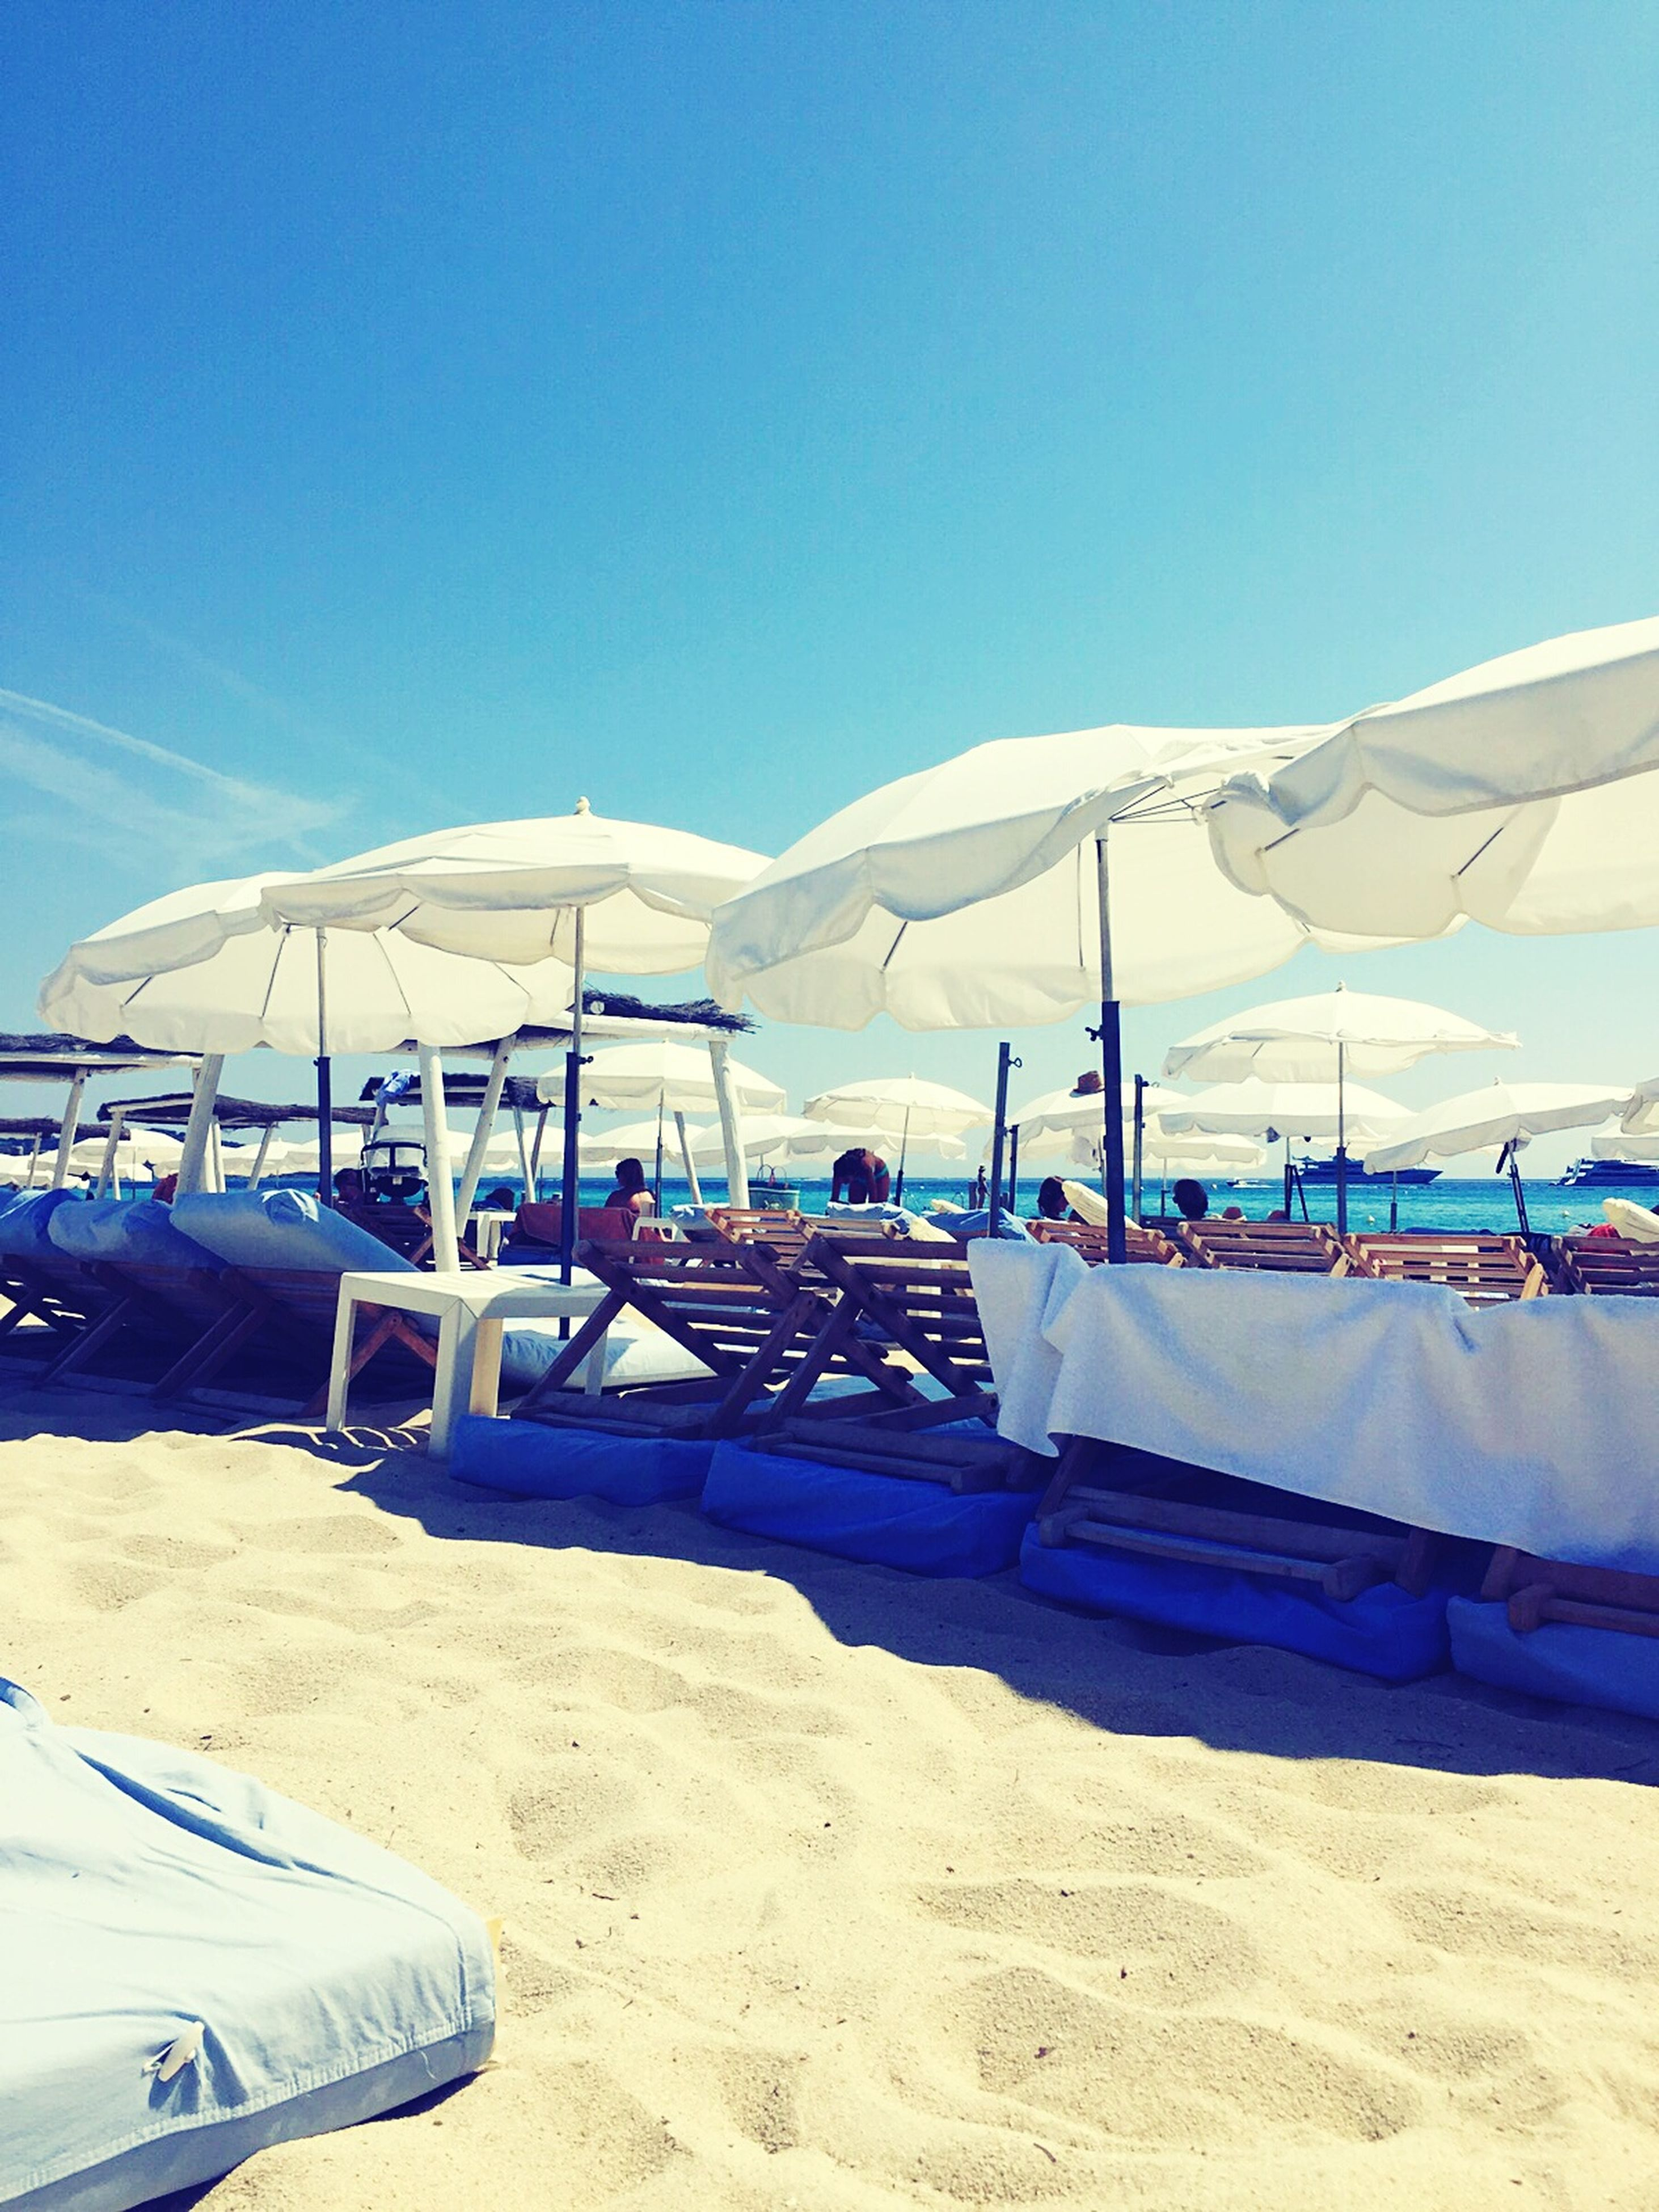 clear sky, sand, blue, beach, mountain, transportation, beach umbrella, tranquility, sunlight, tranquil scene, sky, vacations, landscape, nature, scenics, copy space, travel, day, mode of transport, parasol